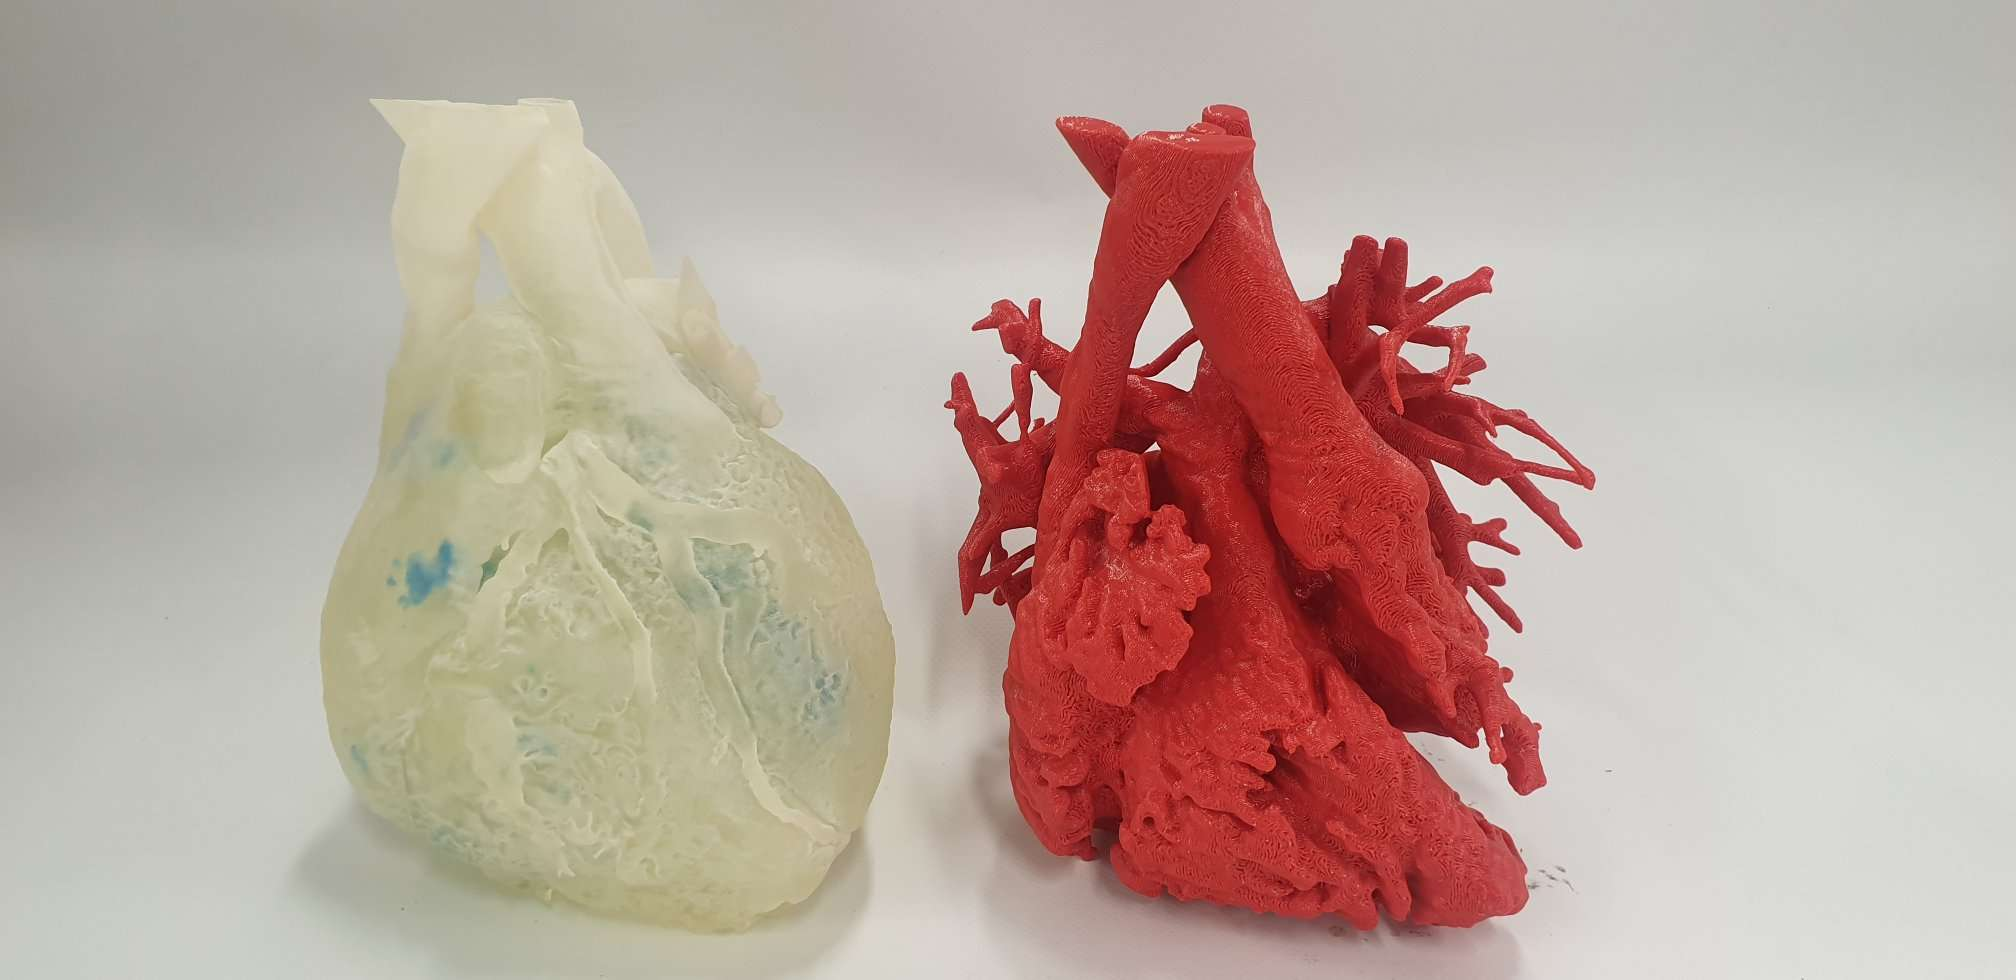 3D Lifeprints technology has been utilized in a range of medical applications including soft printed models to simulate operations (pictured). Photo via 3D Lifeprint.